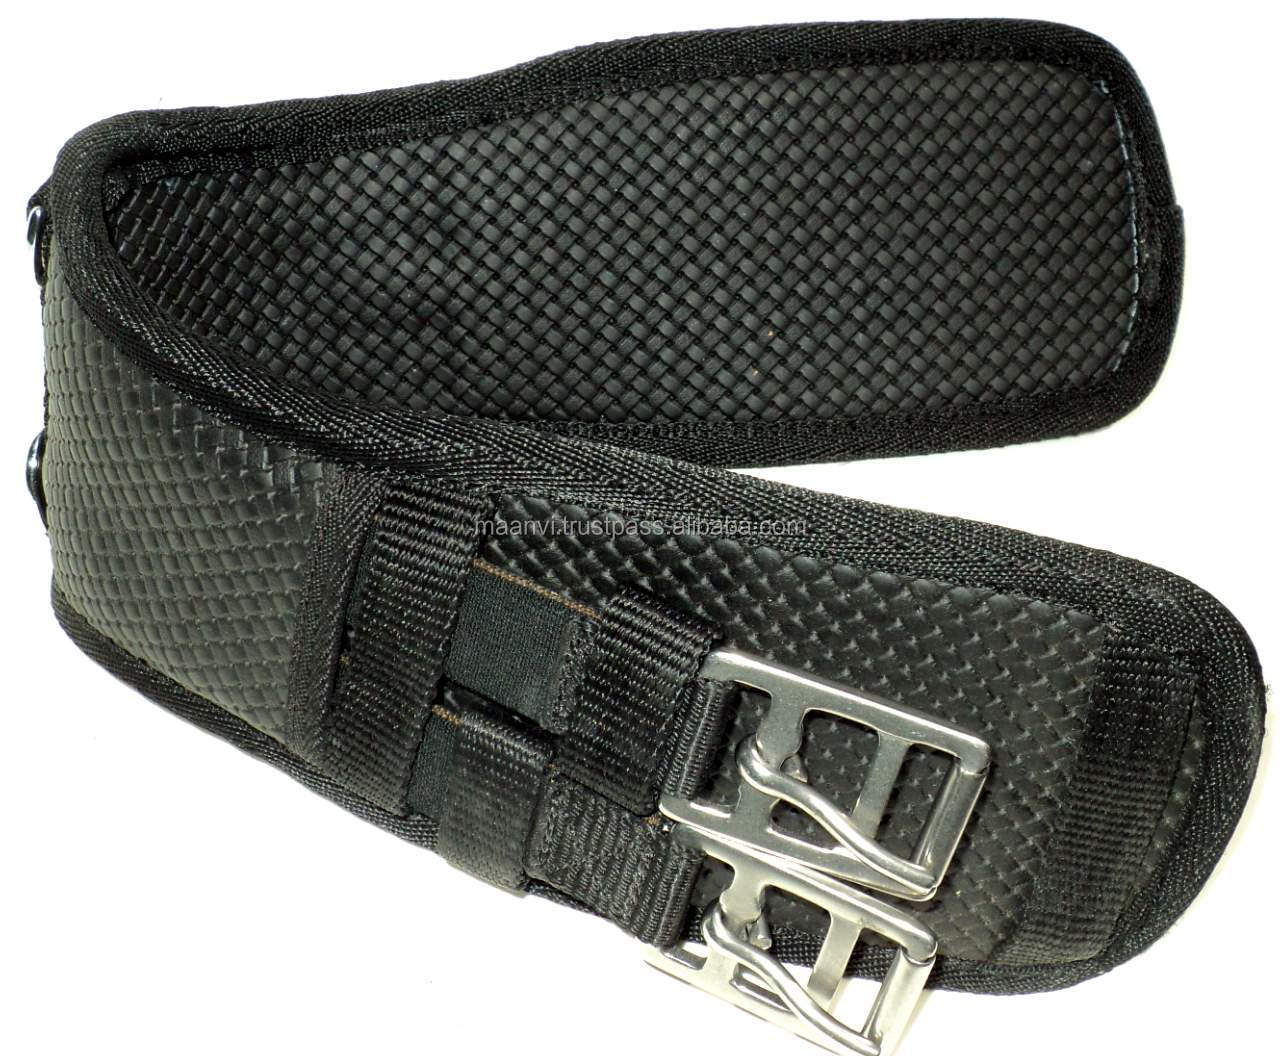 NEOPRENE HORSE GIRTH